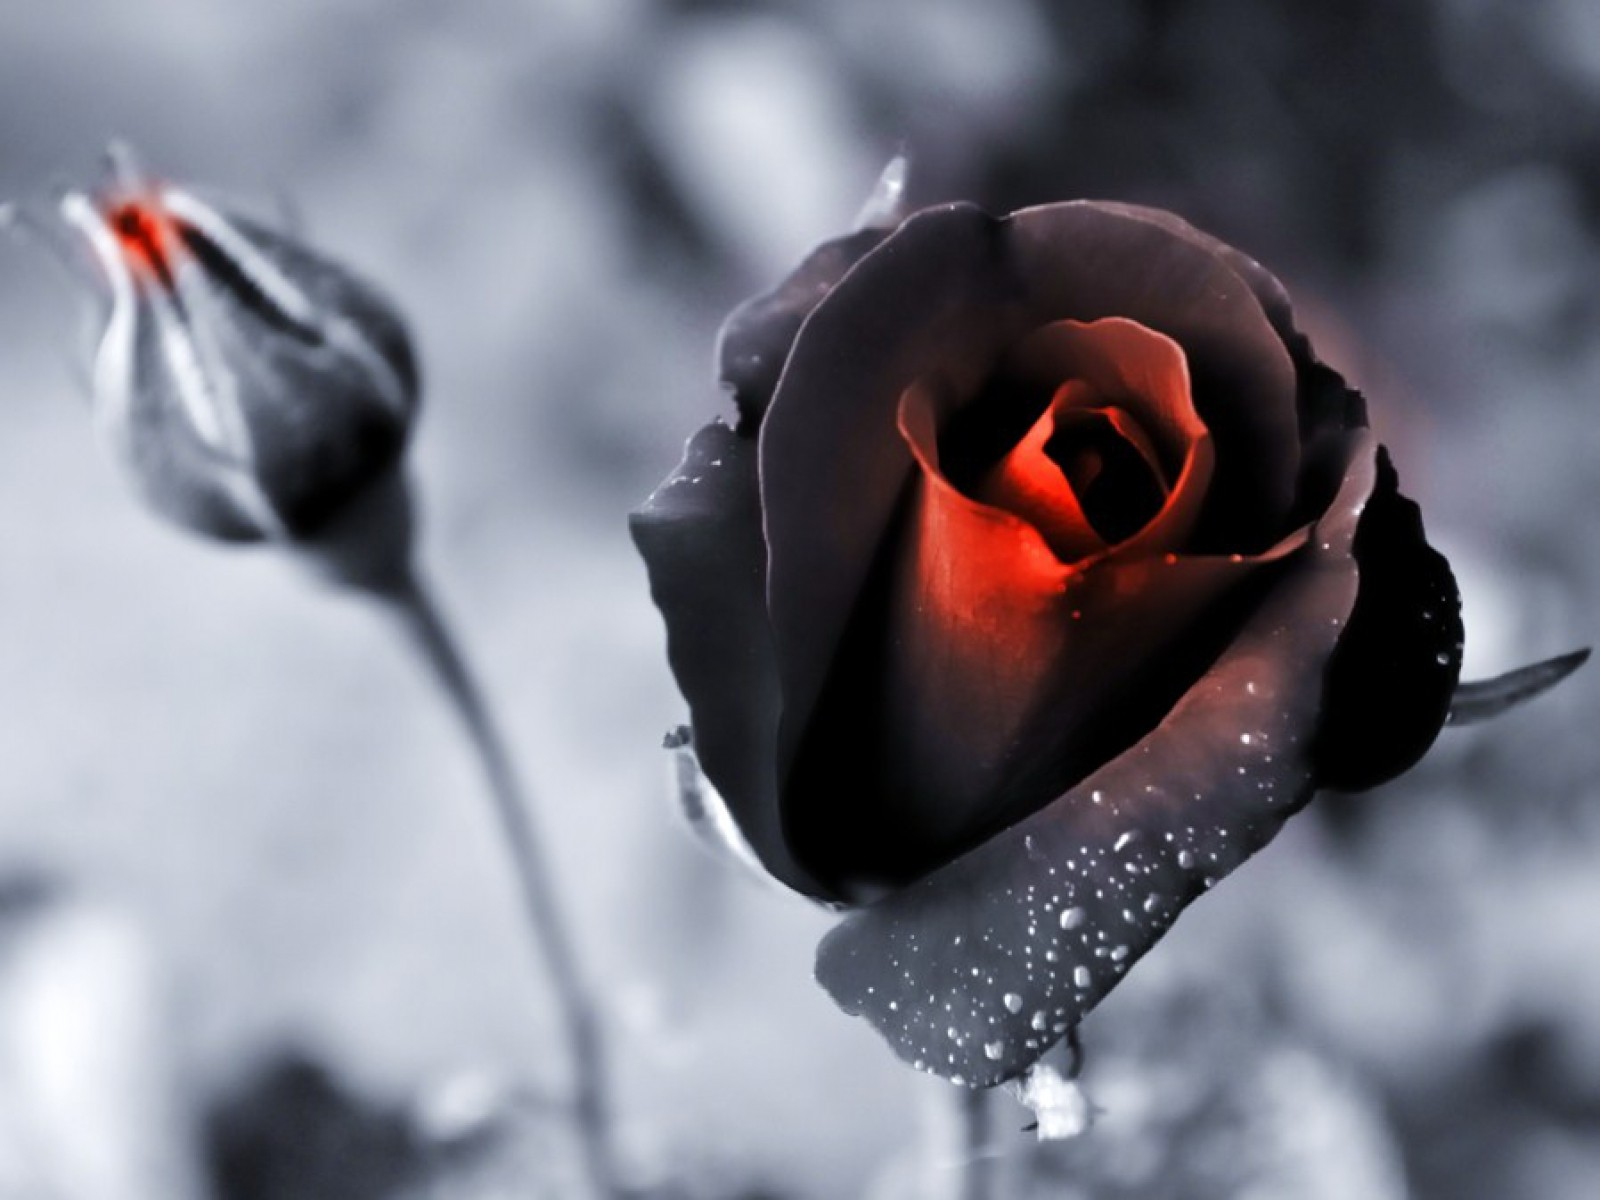 Black And White Photography With Color Roses Industrifo